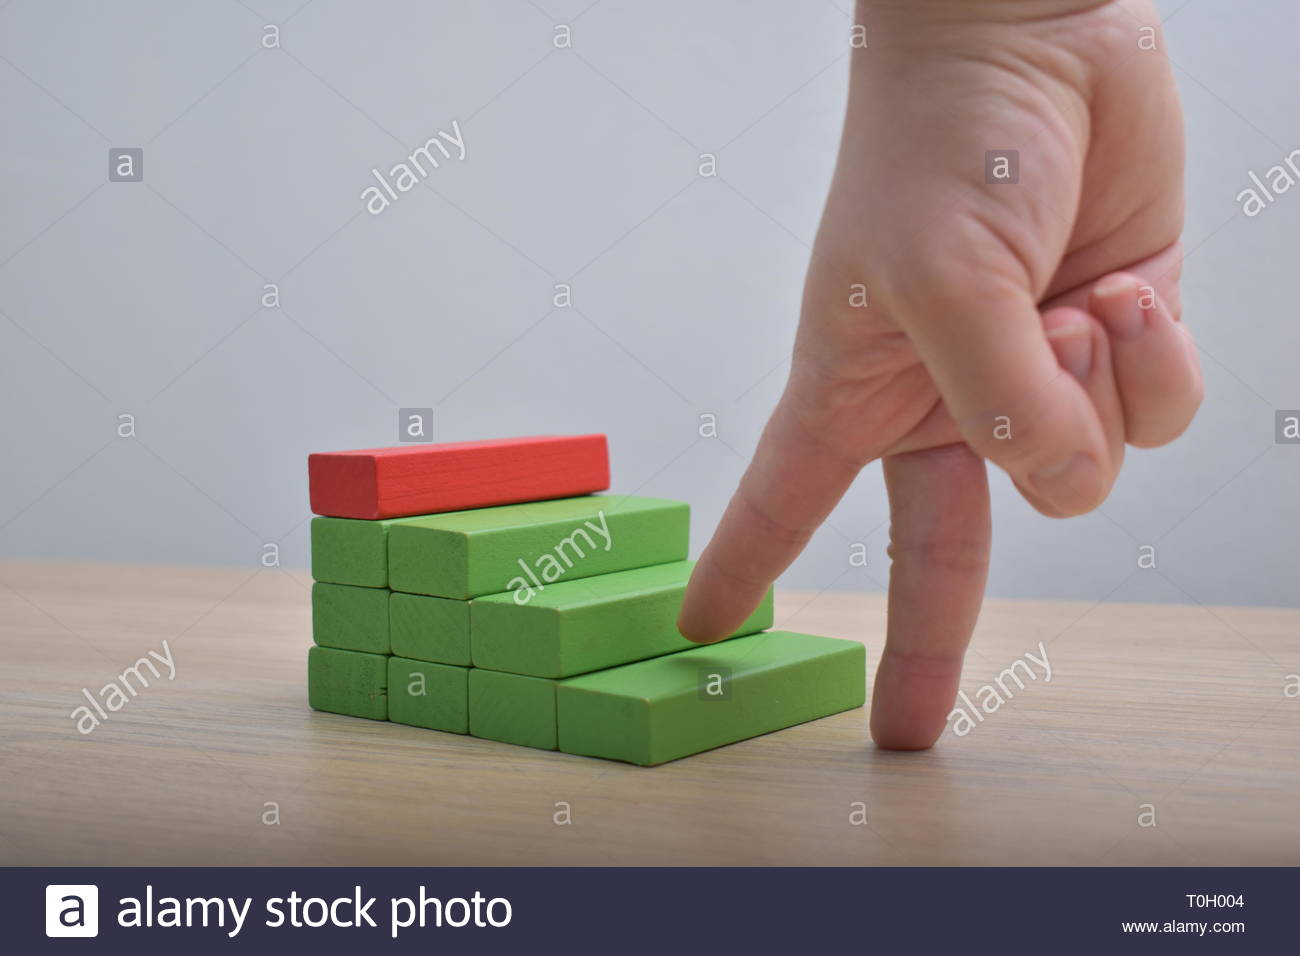 Giving the first step Wooden blocks ladder and fingers career path concept - Stock Image